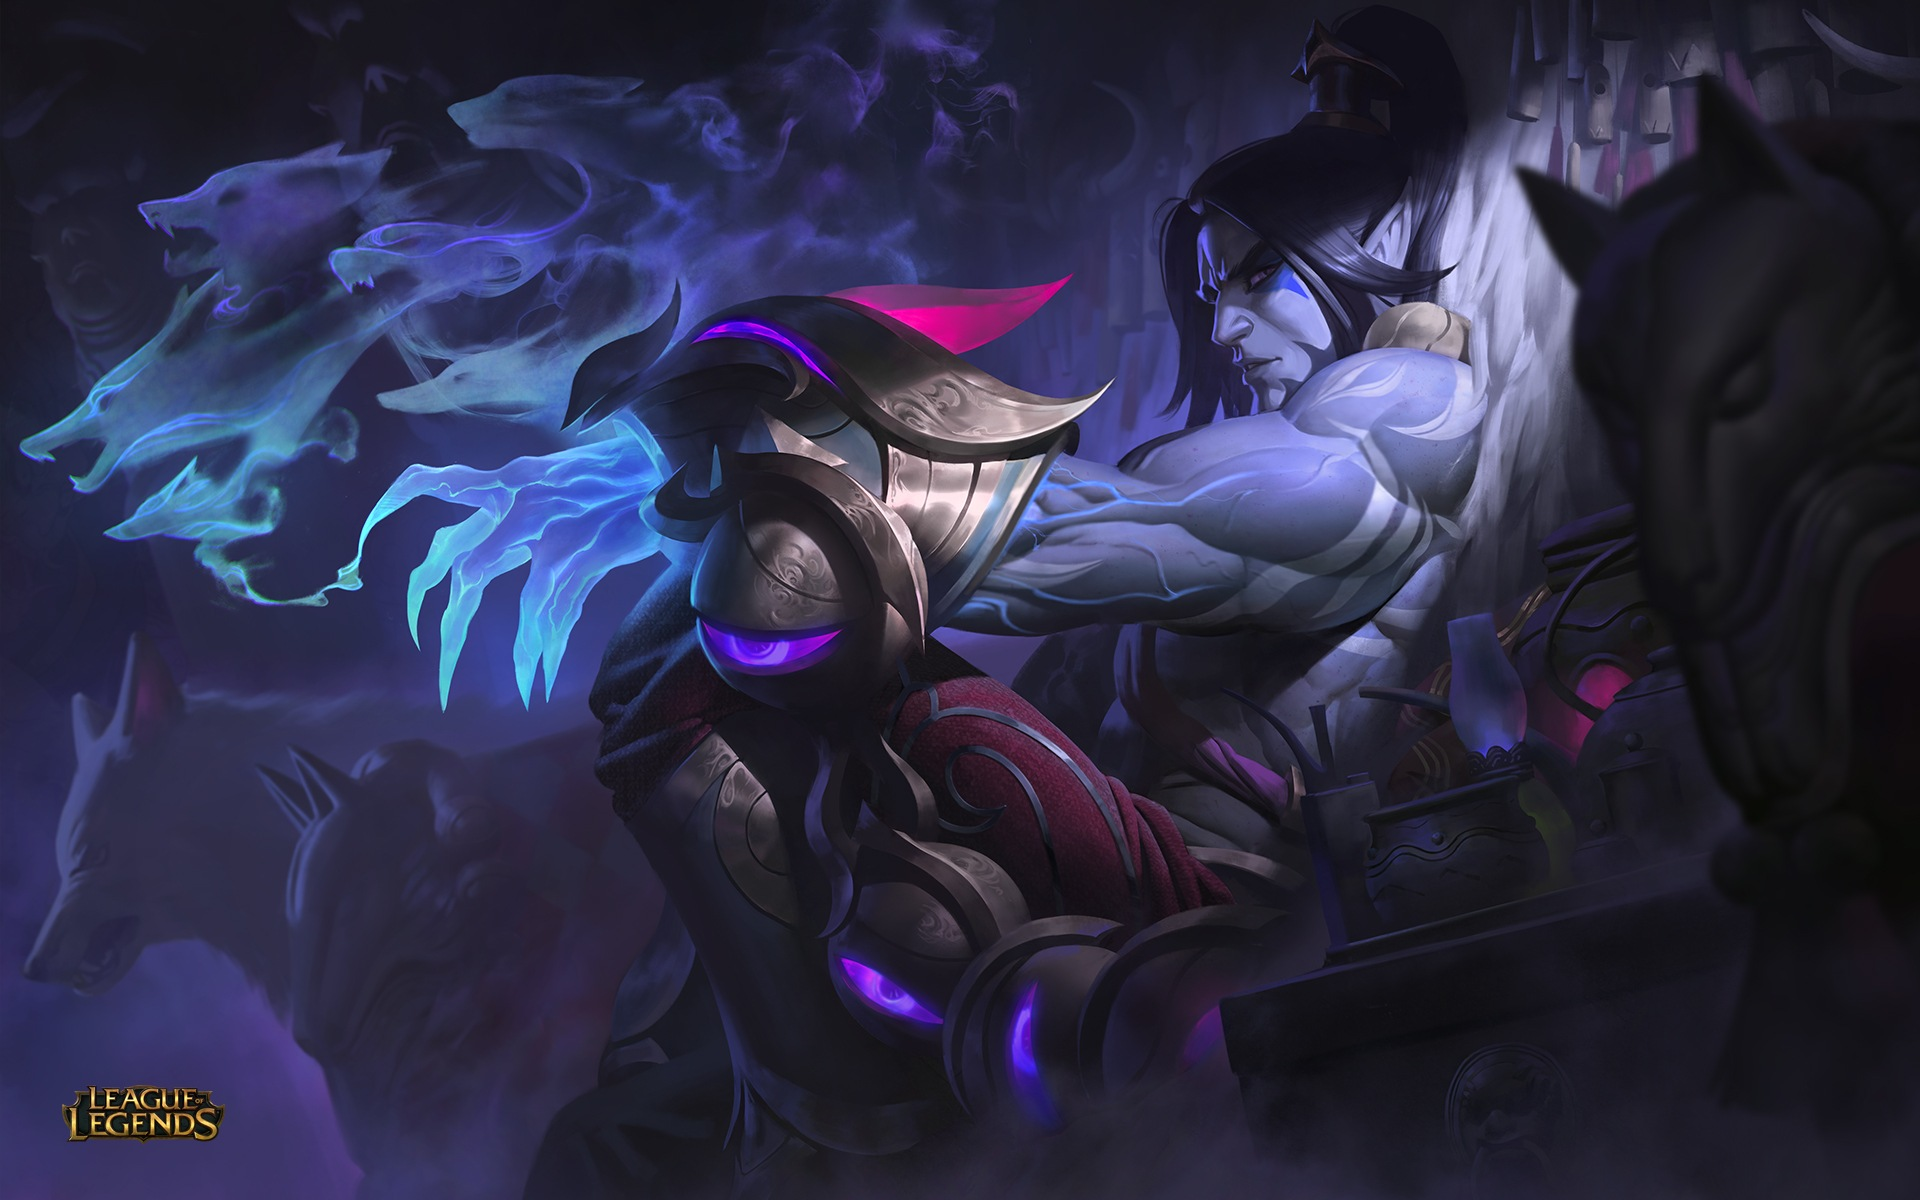 Top 5 Champions You Should Play In League Of Legends